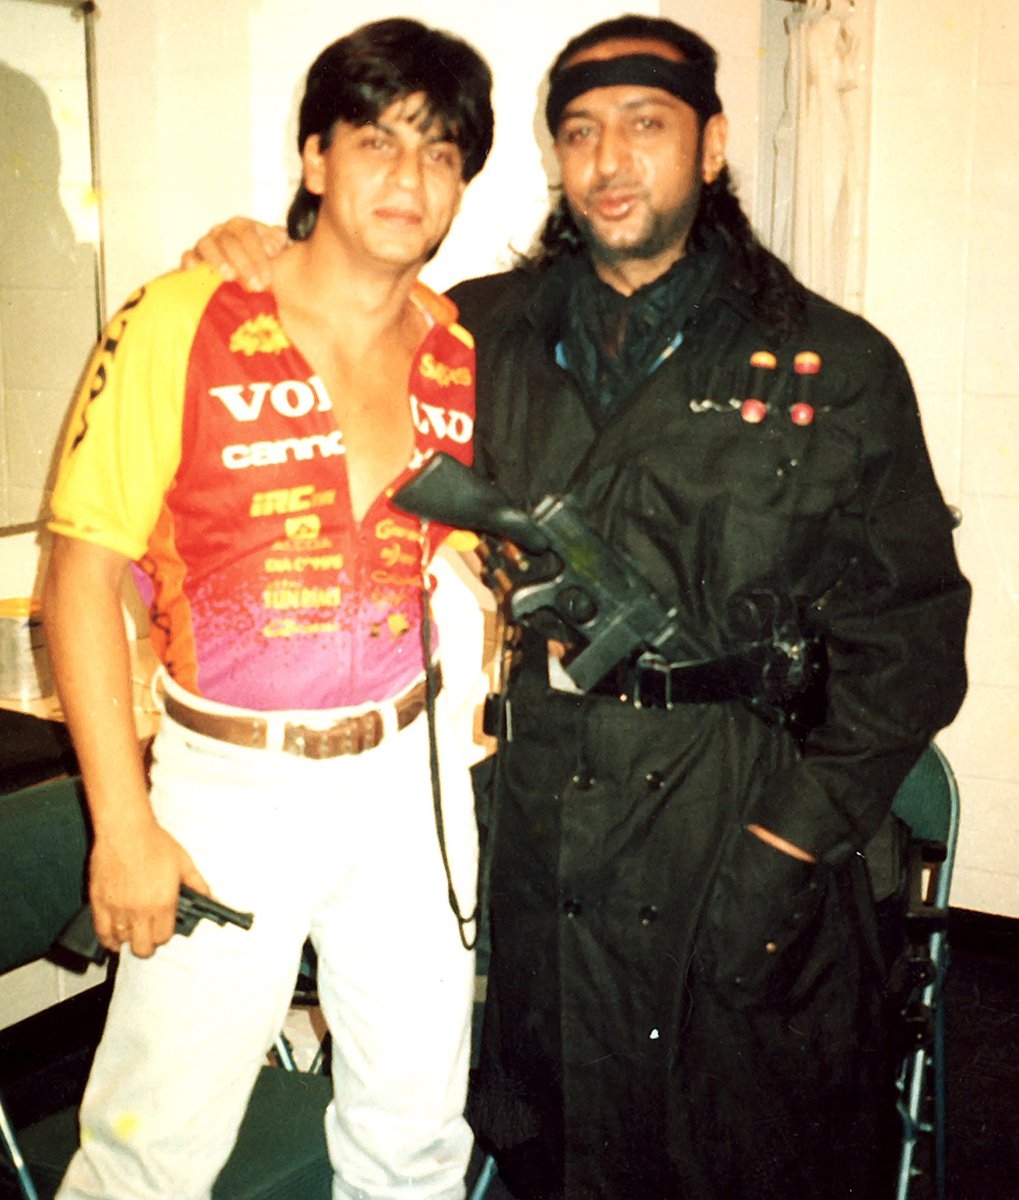 Happy Birthday ⁦@iamsrk⁩ my friend. I value and cherish your unconditional friendship in life ,on sets and multiple world tours for live shows we did together.Remember, how proud you made us when legendary ⁦@Madonna⁩ came back stage in LA to meet our superstar #SRK